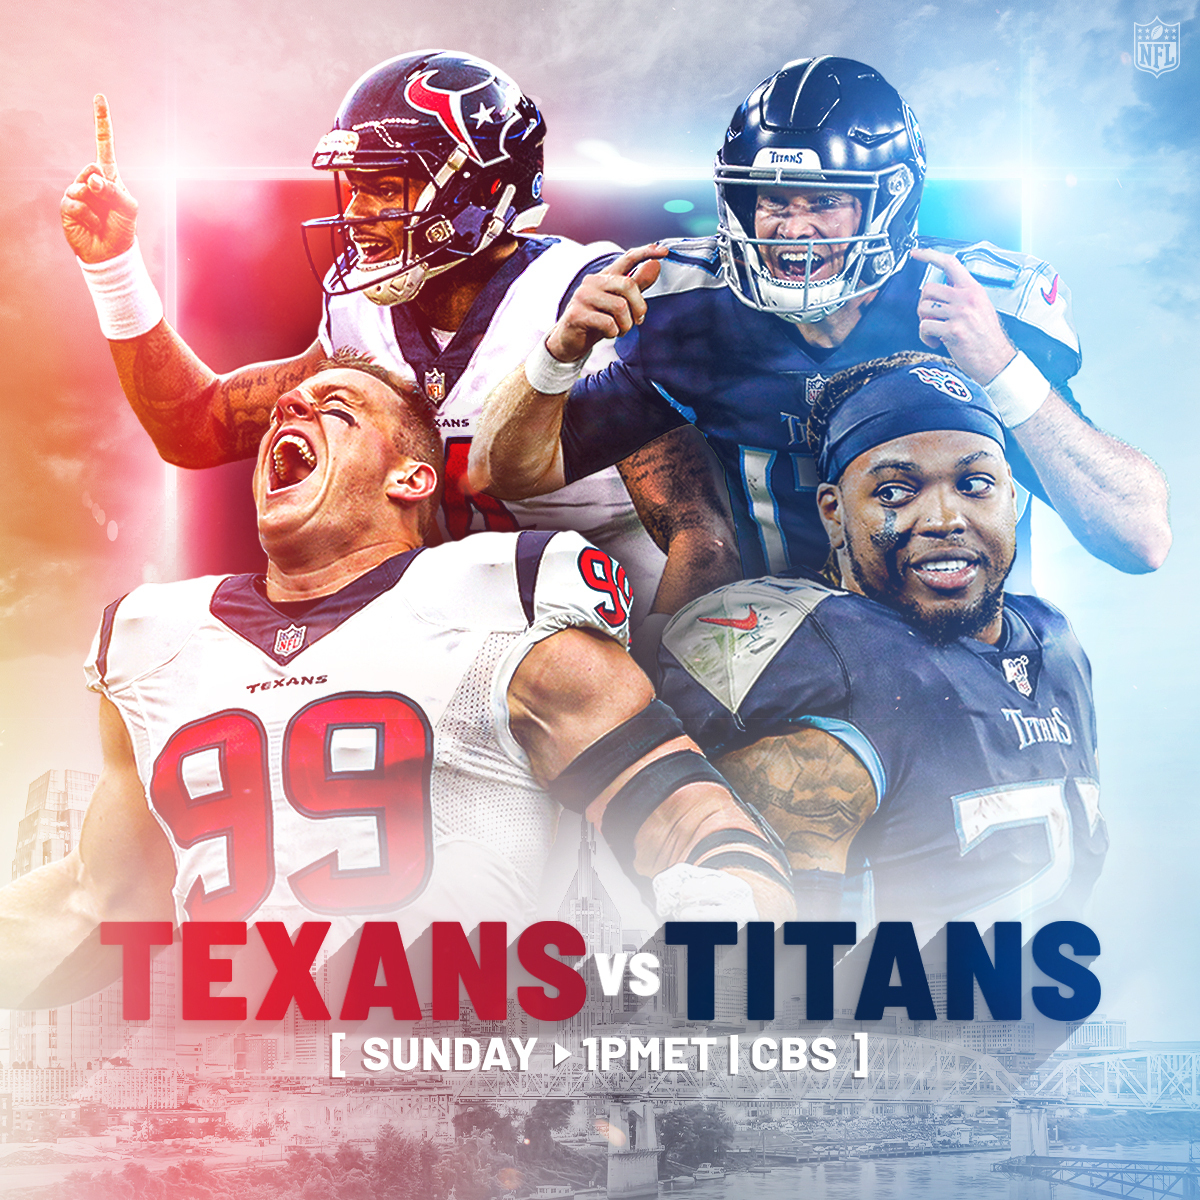 The @Texans take on the undefeated @Titans in an AFC South matchup! 📺: #HOUvsTEN — Sunday 1pm ET on CBS 📱: NFL app // Yahoo Sports app